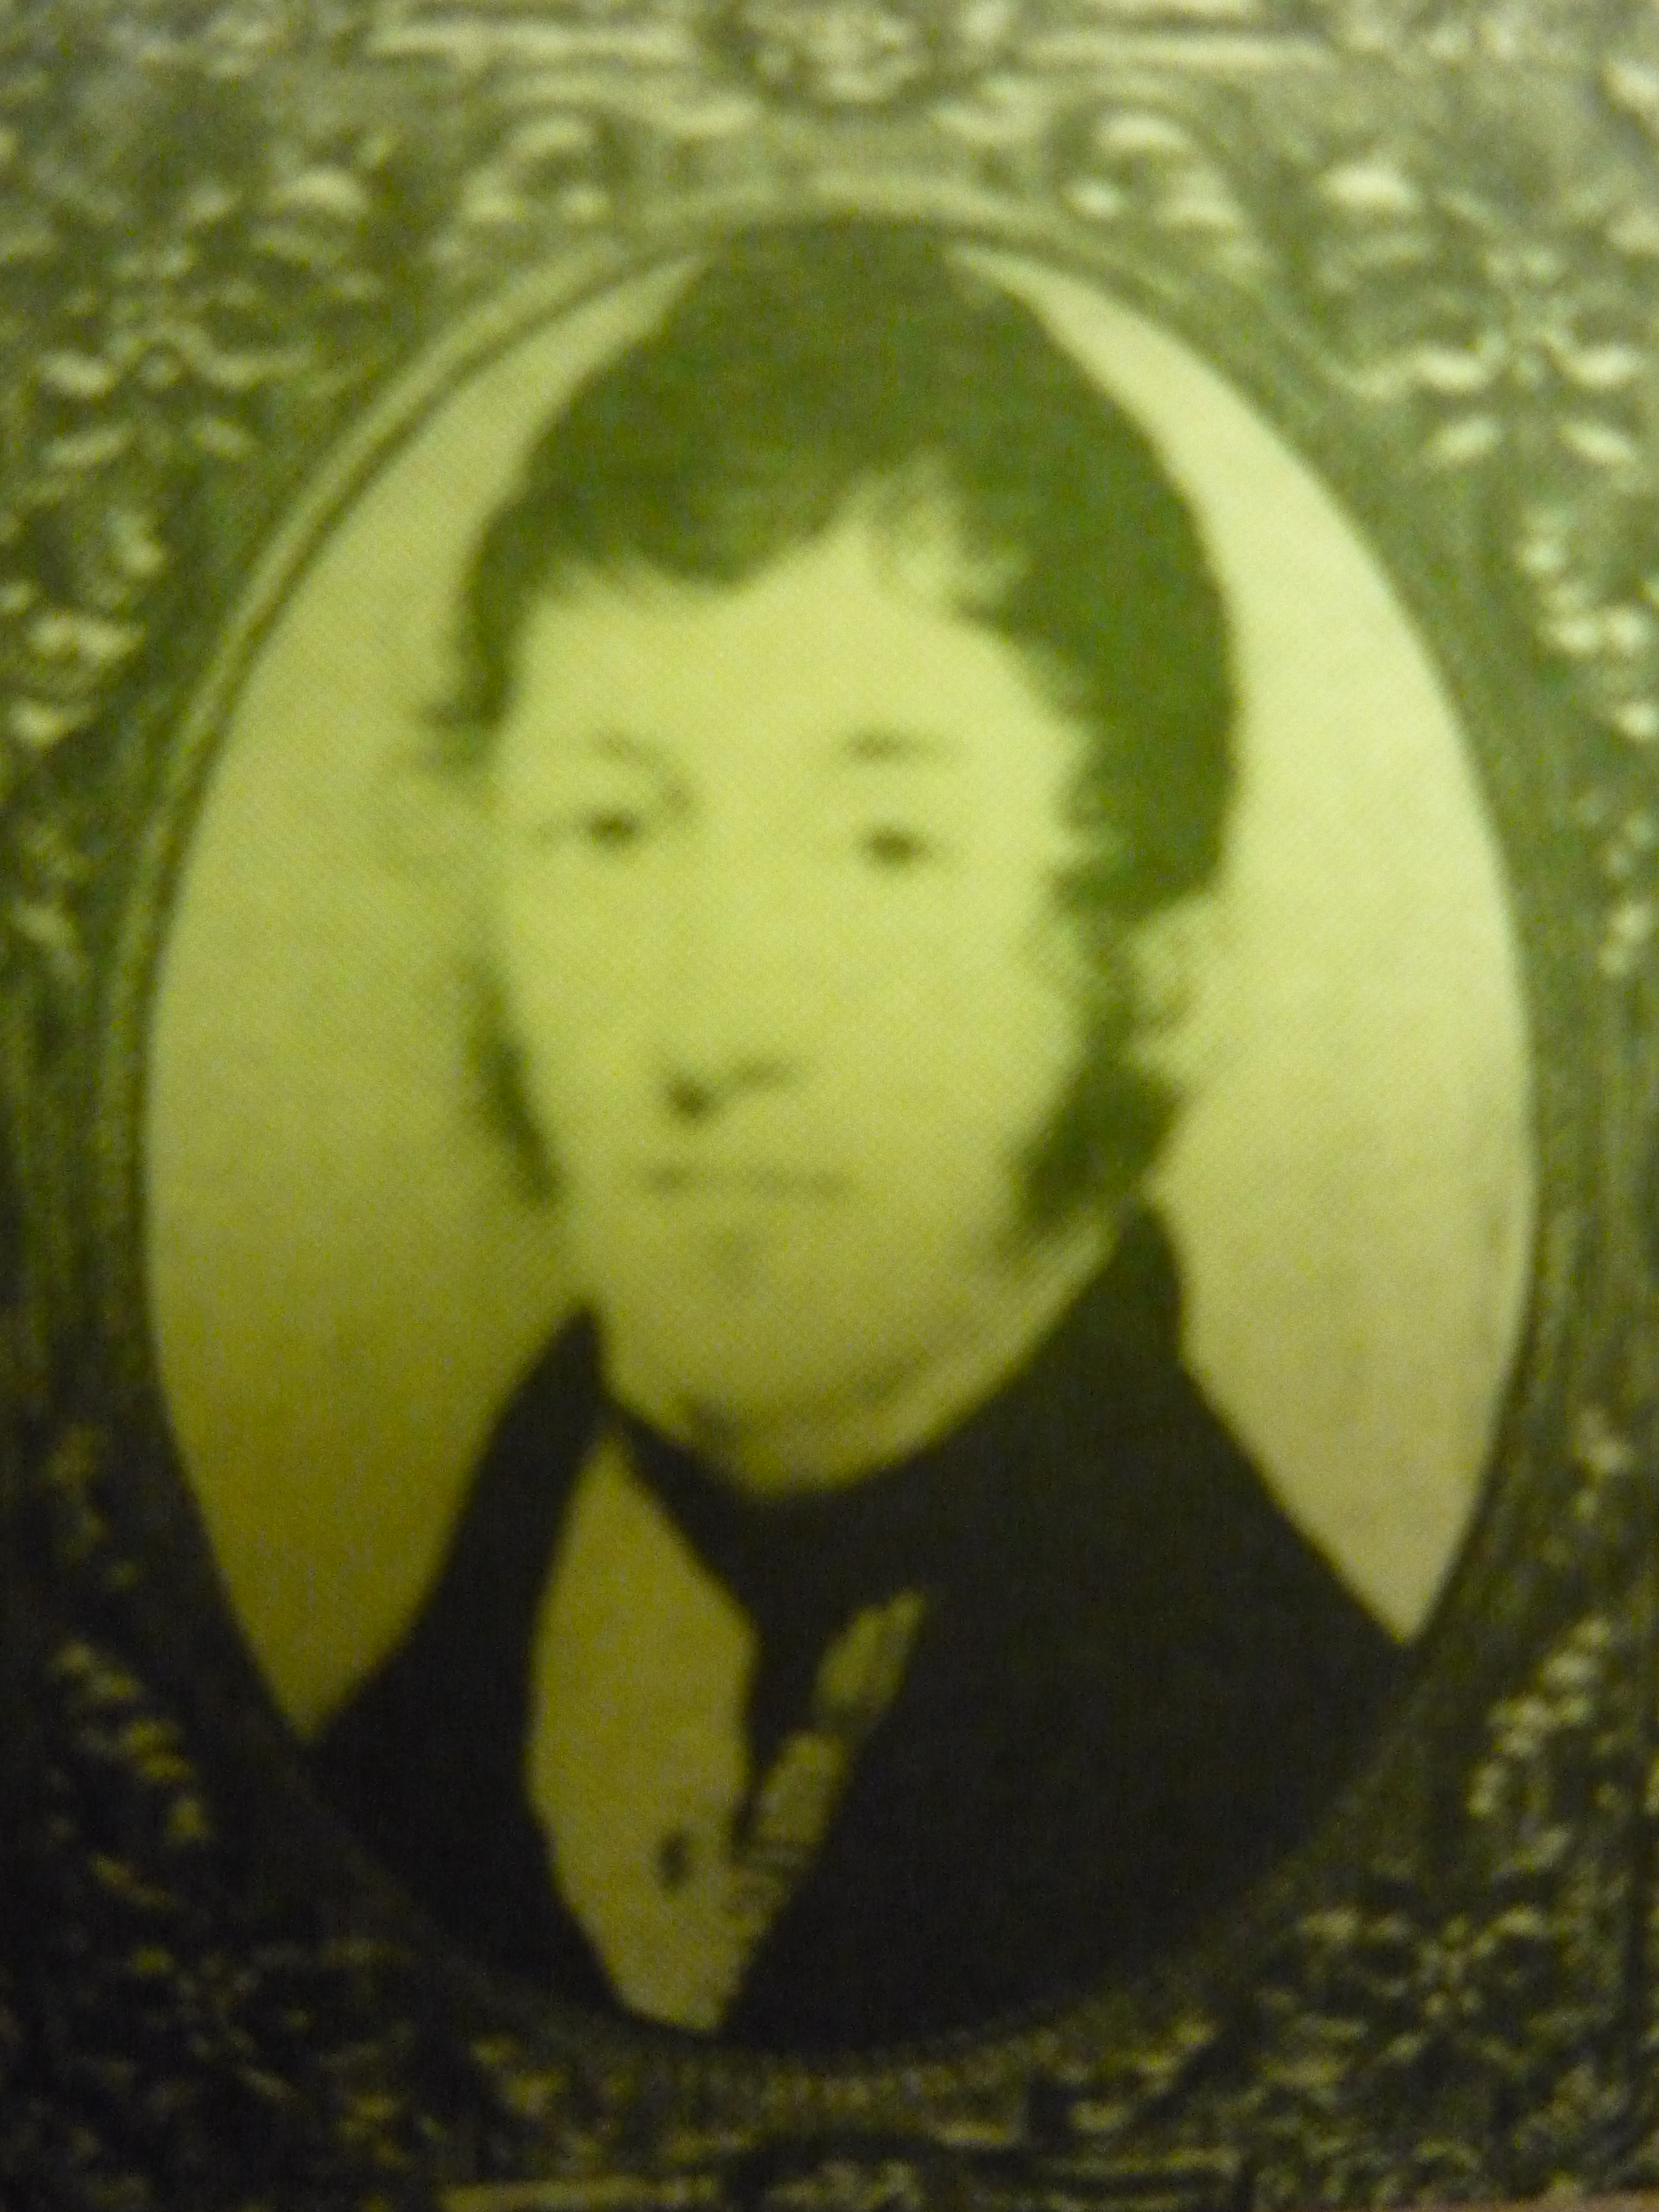 Lewis Madison Lawshe